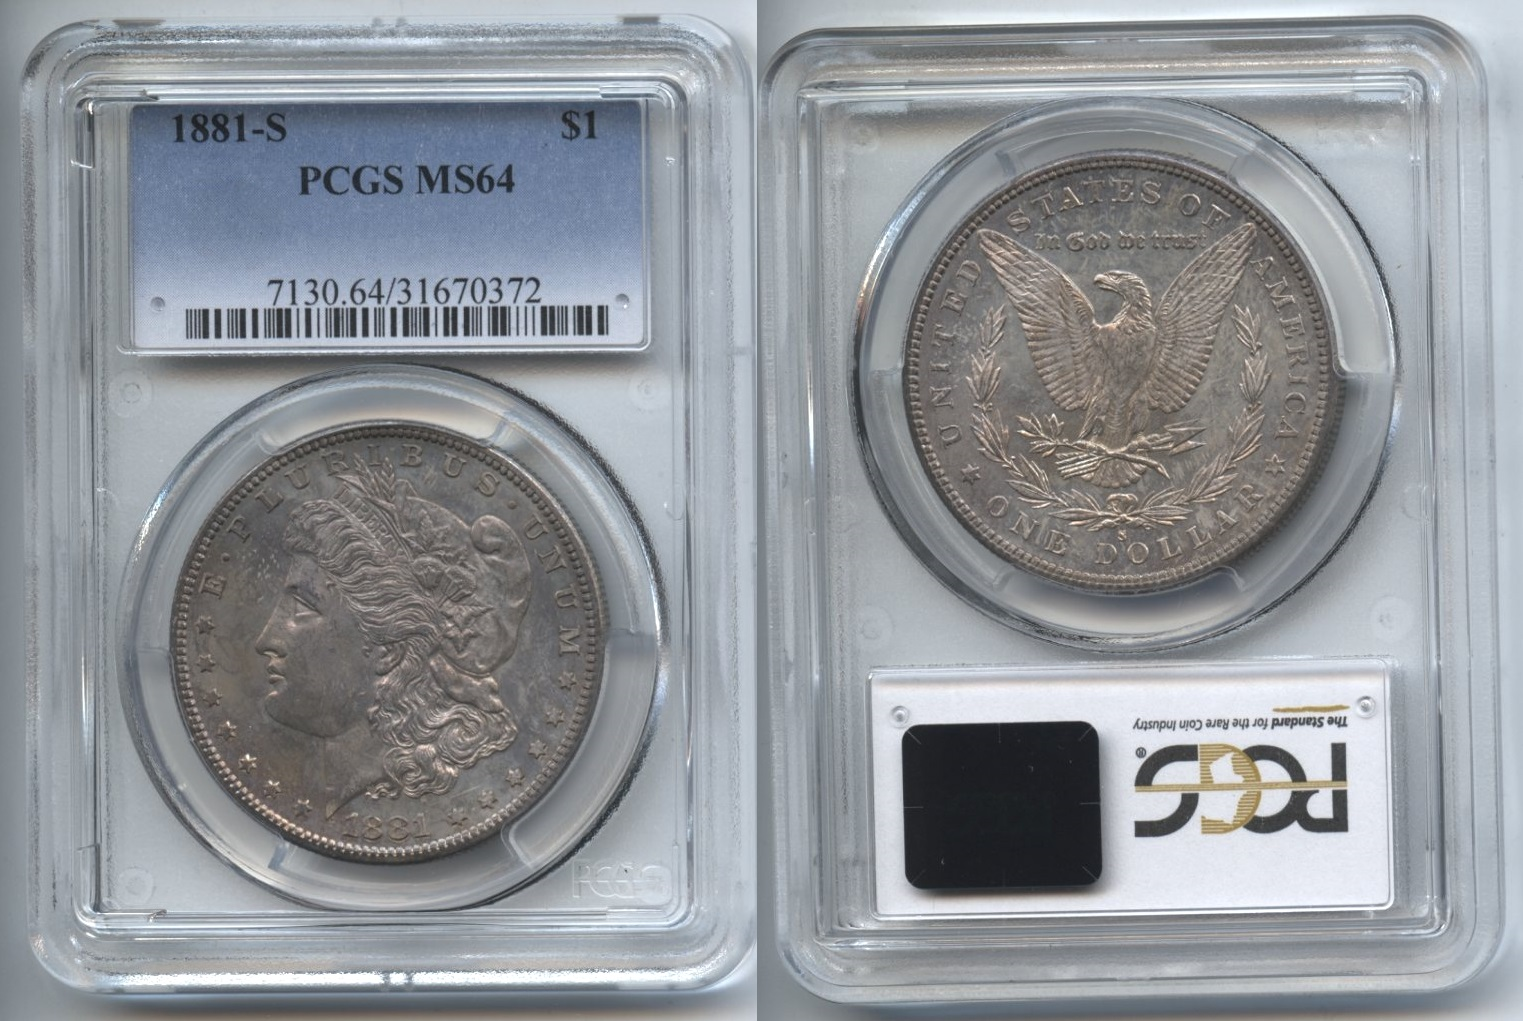 1881-S Morgan Silver Dollar PCGS MS-64 #e